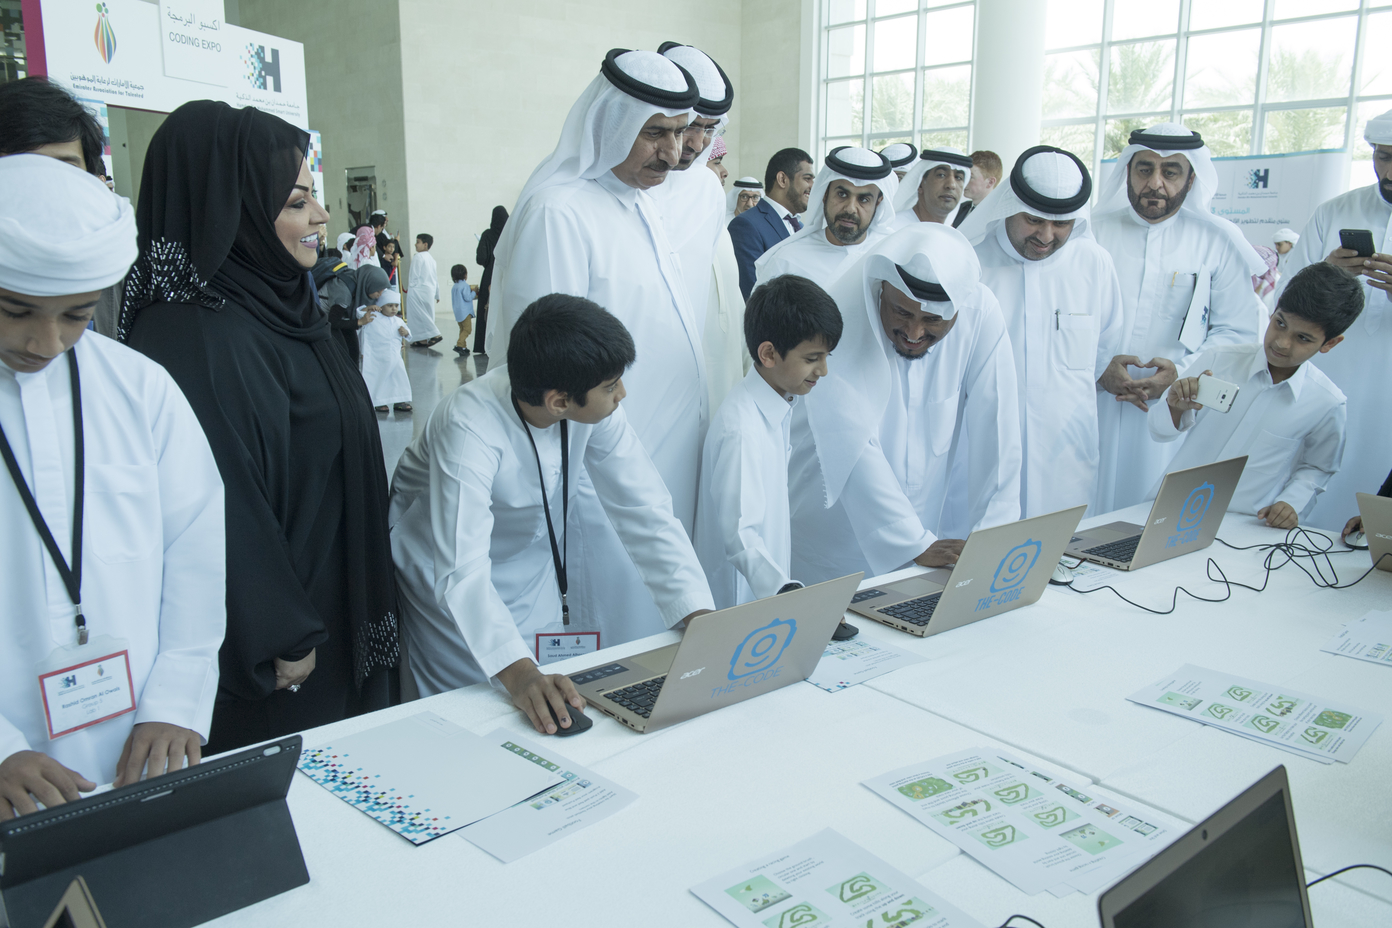 'Emirati Programmer' moves to next step with launch of Hackathon competition under supervision of international jury of IT experts